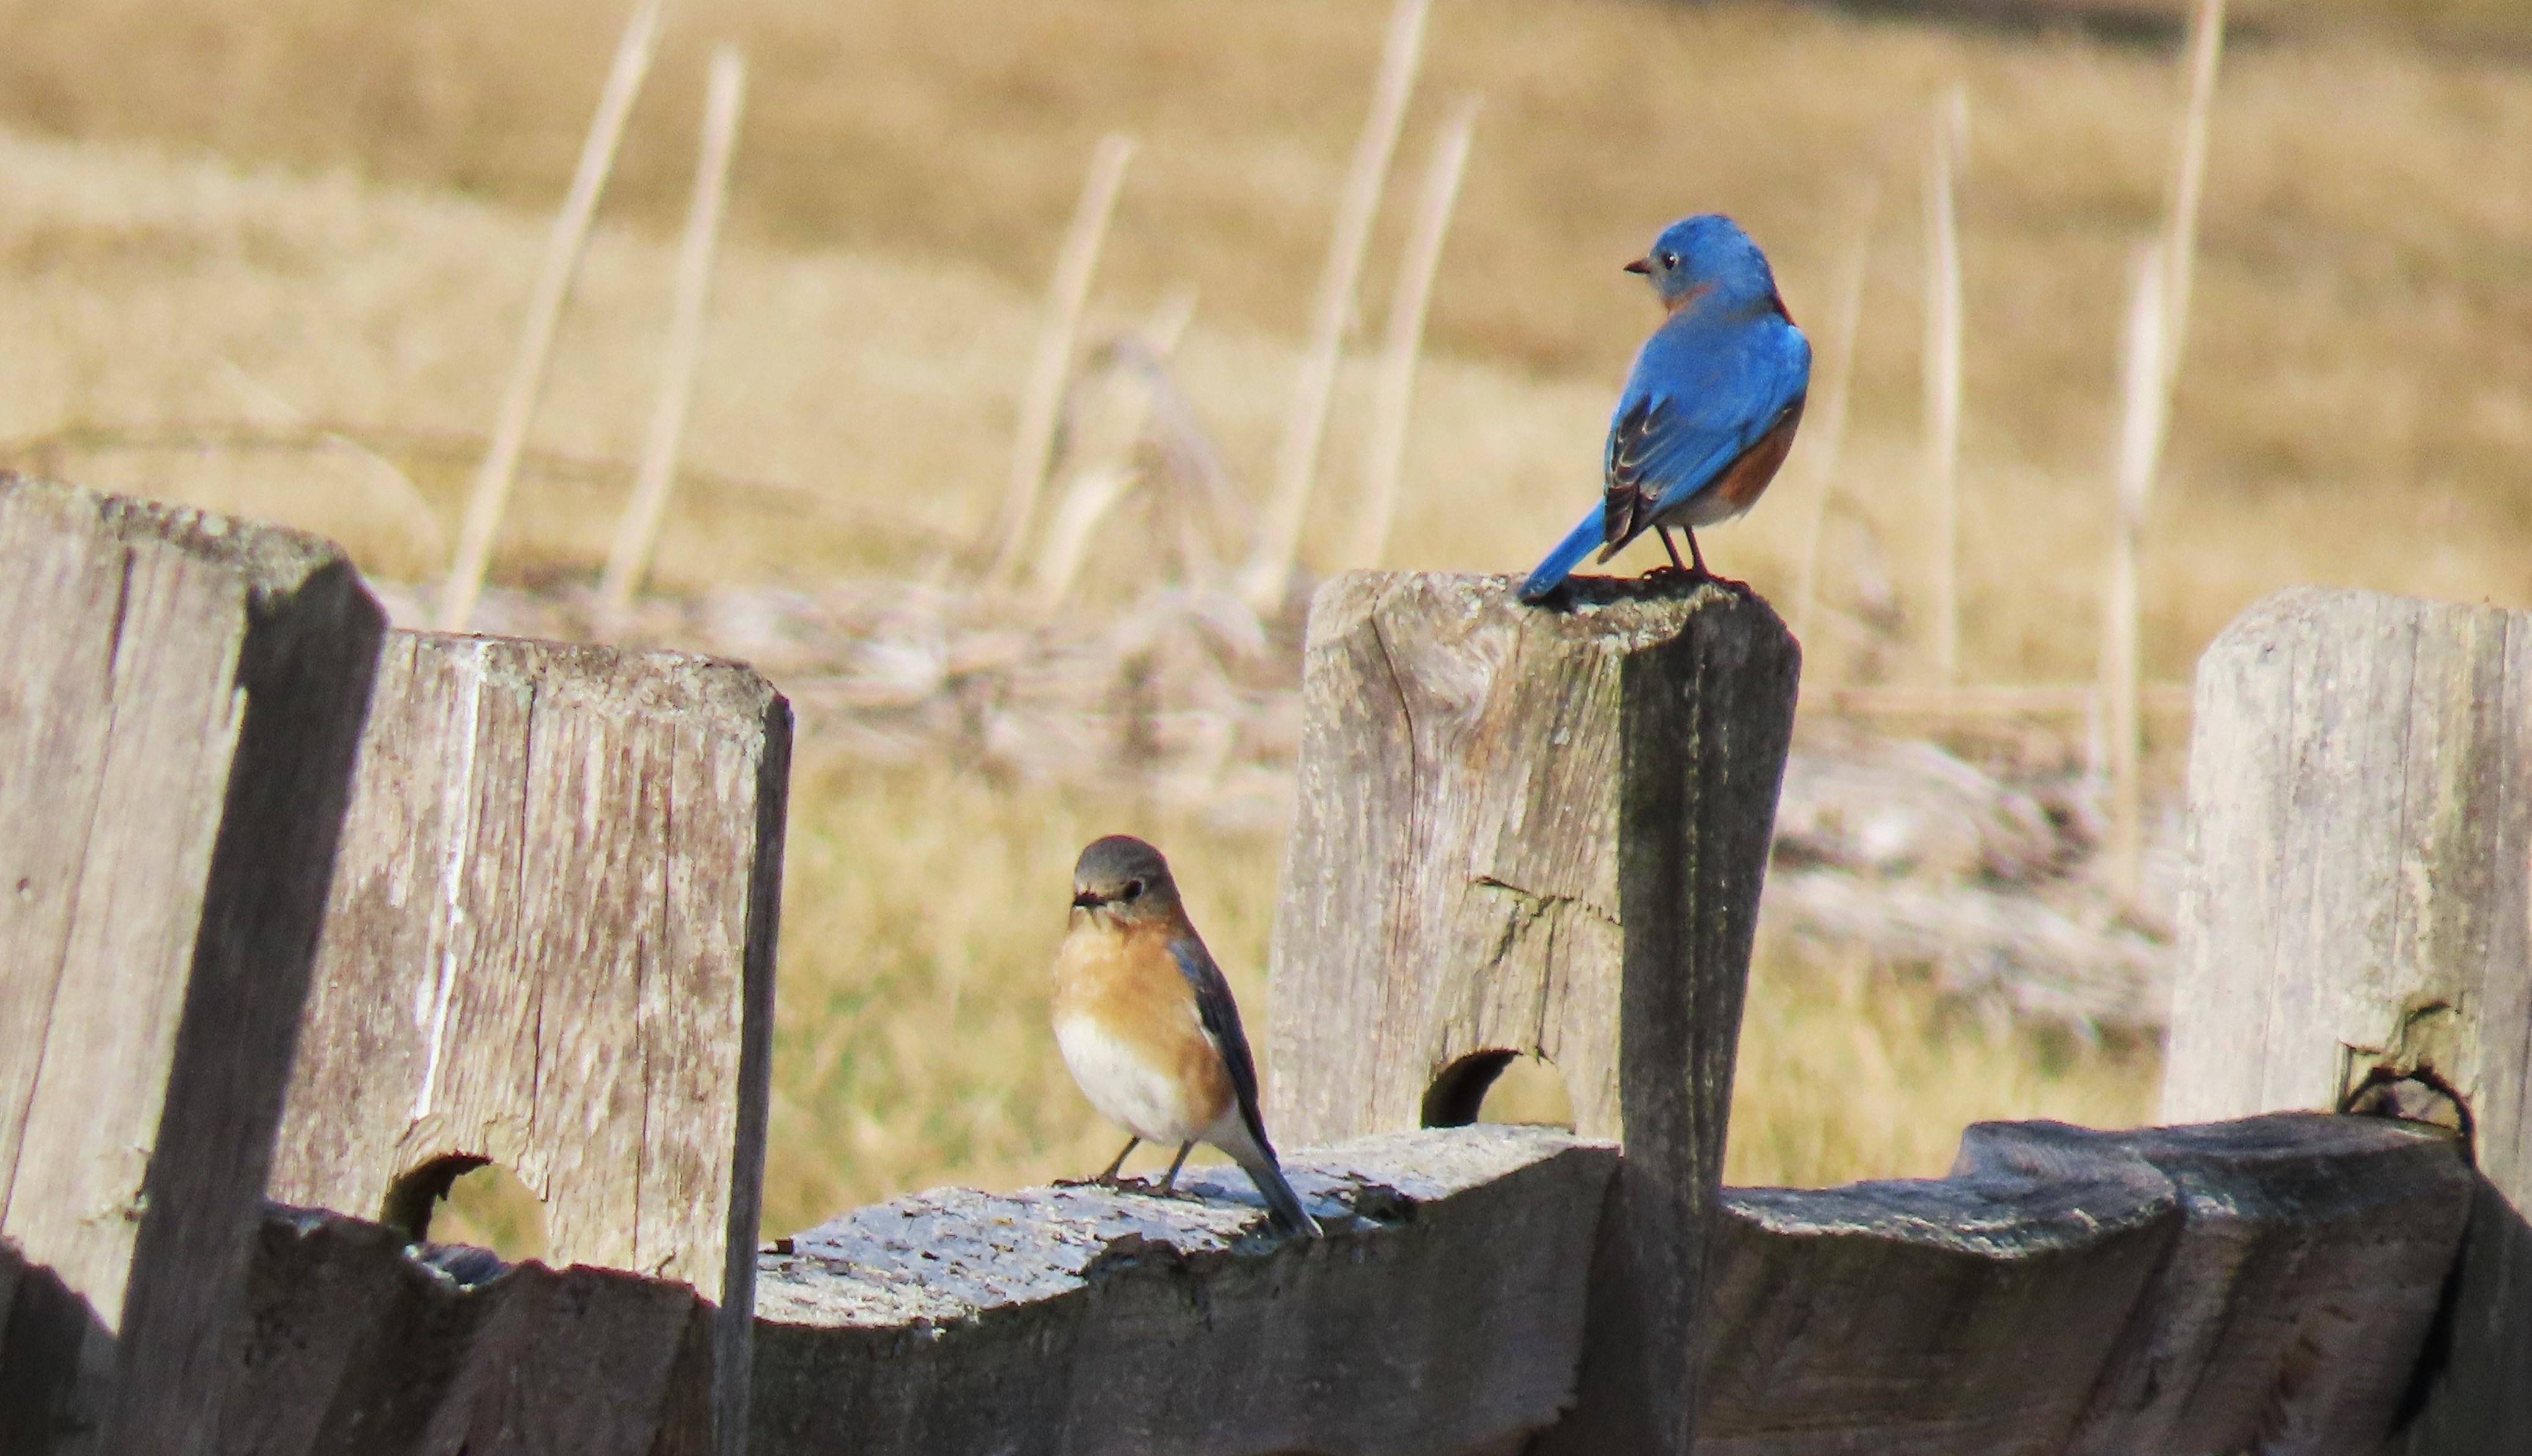 Two Eastern Bluebirds perched on a wooden fence post